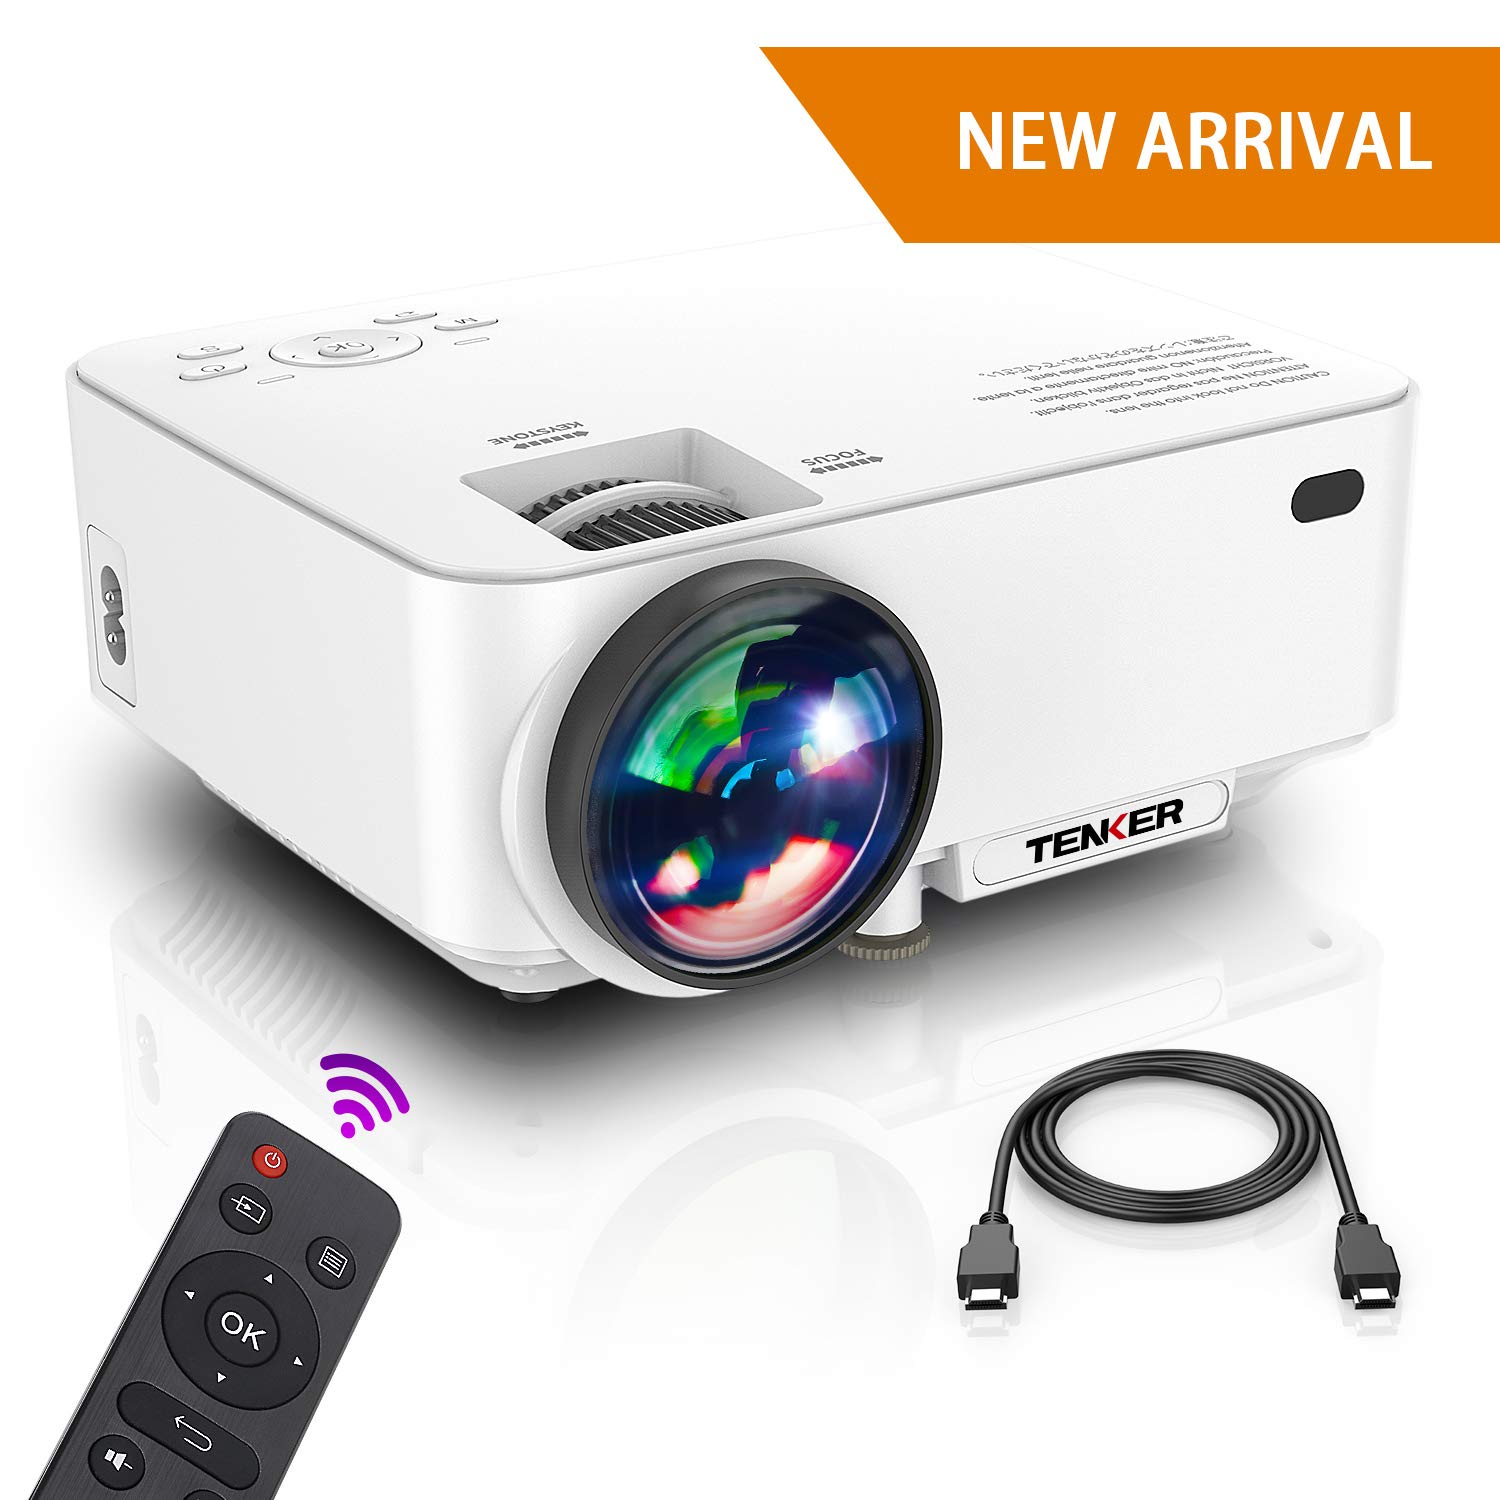 Projector, Upgraded TENKER Projector, Now 65% Brighter, Mini Home Theater Movie Projector with 4.0'' LCD and Up To 176-inch Display, Supports 1080P HDMI/USB/SD Card/AV/VGA for TVs/Laptops/Games